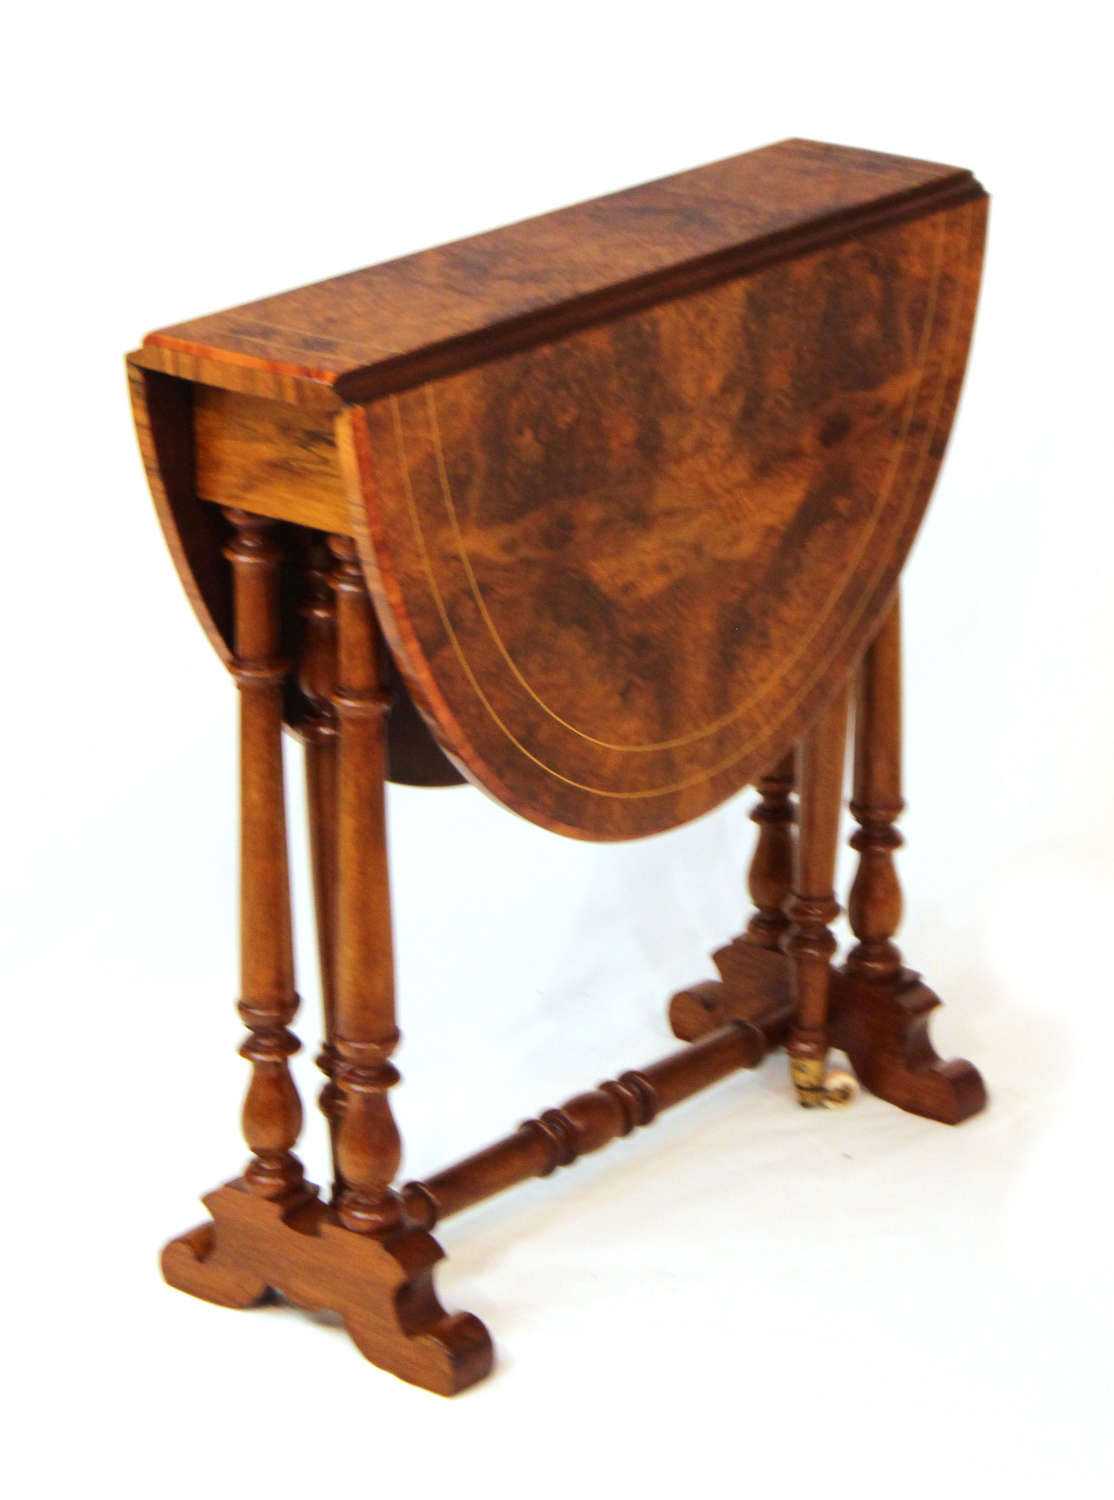 A Fine Quality Burr Walnut Inlaid Baby Sutherland D-Ended Table.